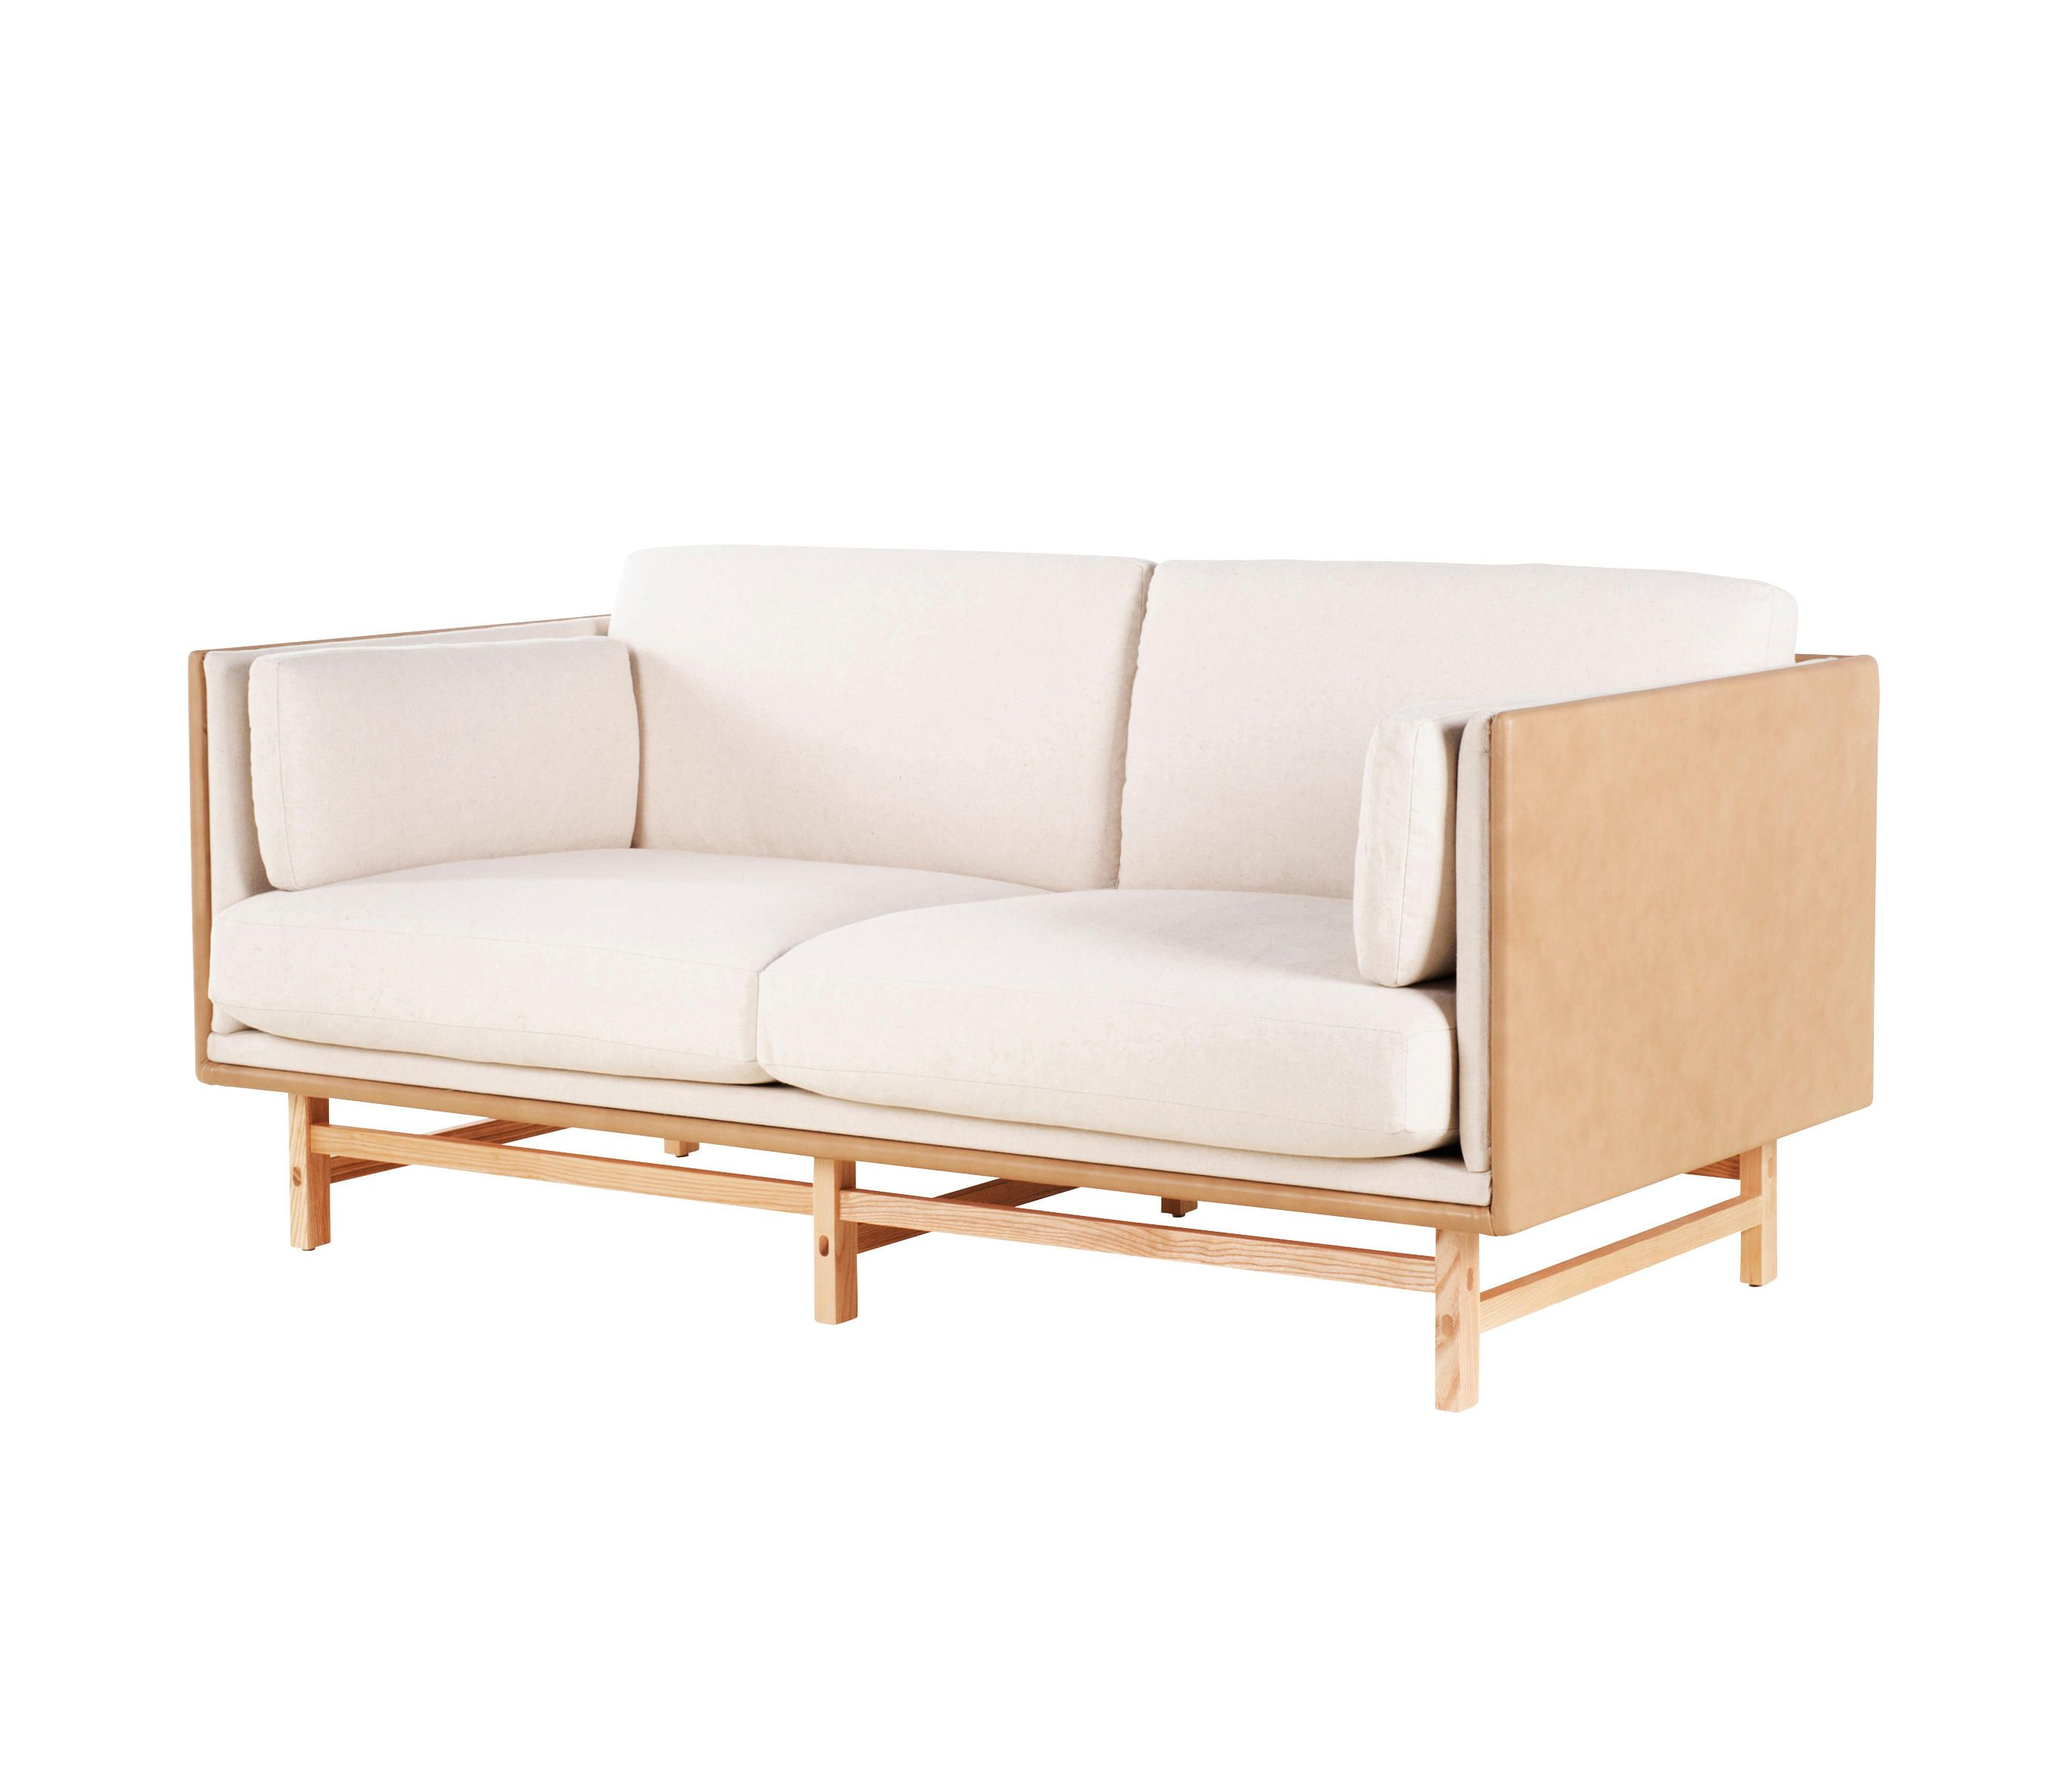 Sw Sofa Two Seater By Stellar Works - Sofas